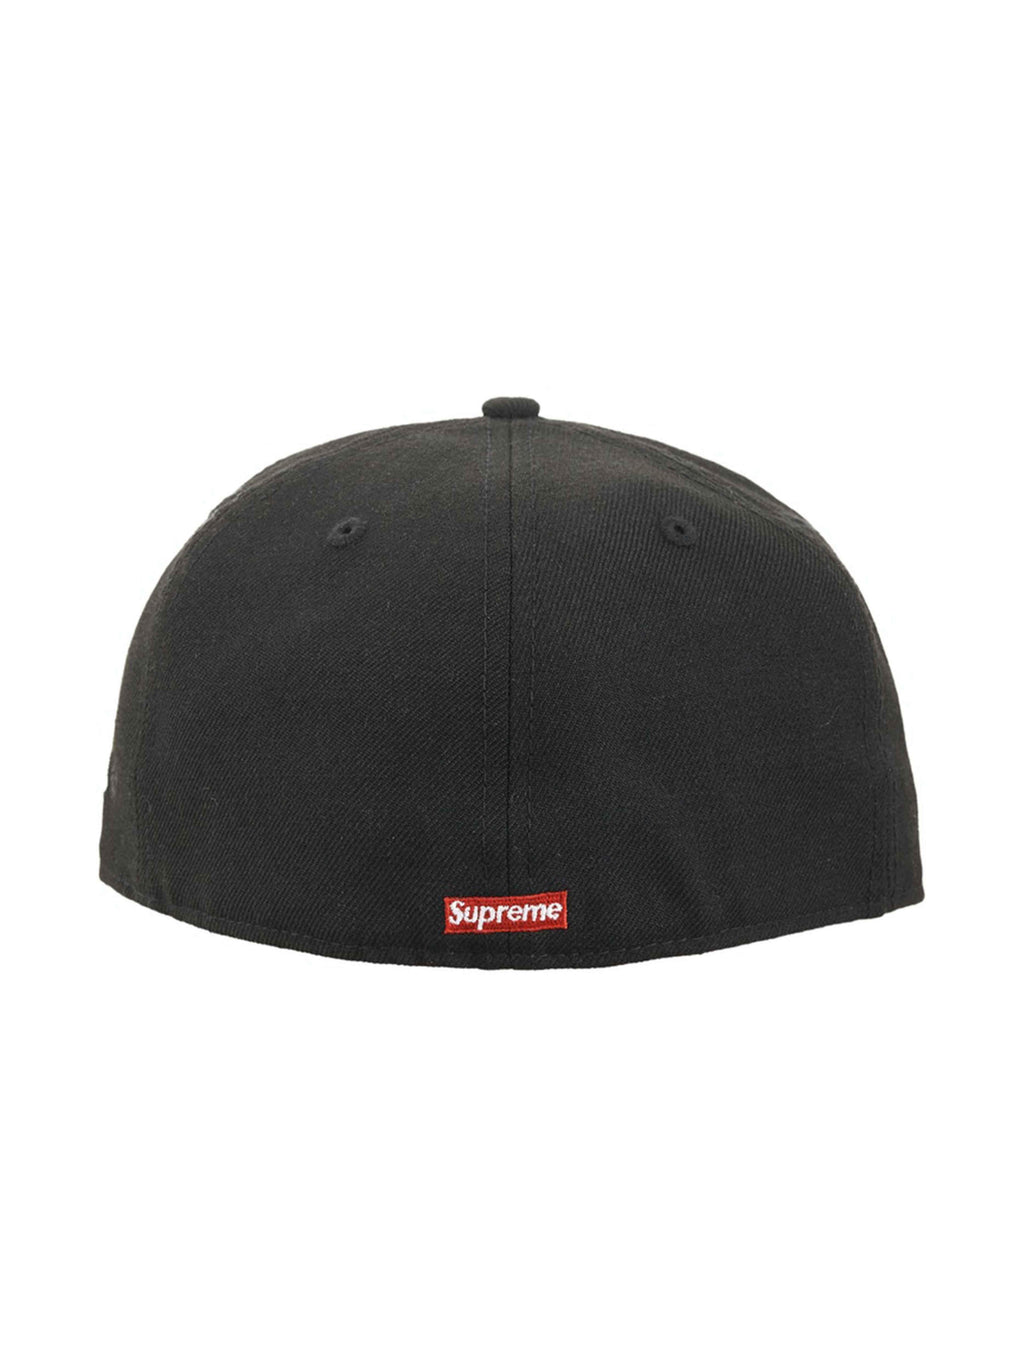 Supreme S Logo New Era Black [FW20] - PRIOR